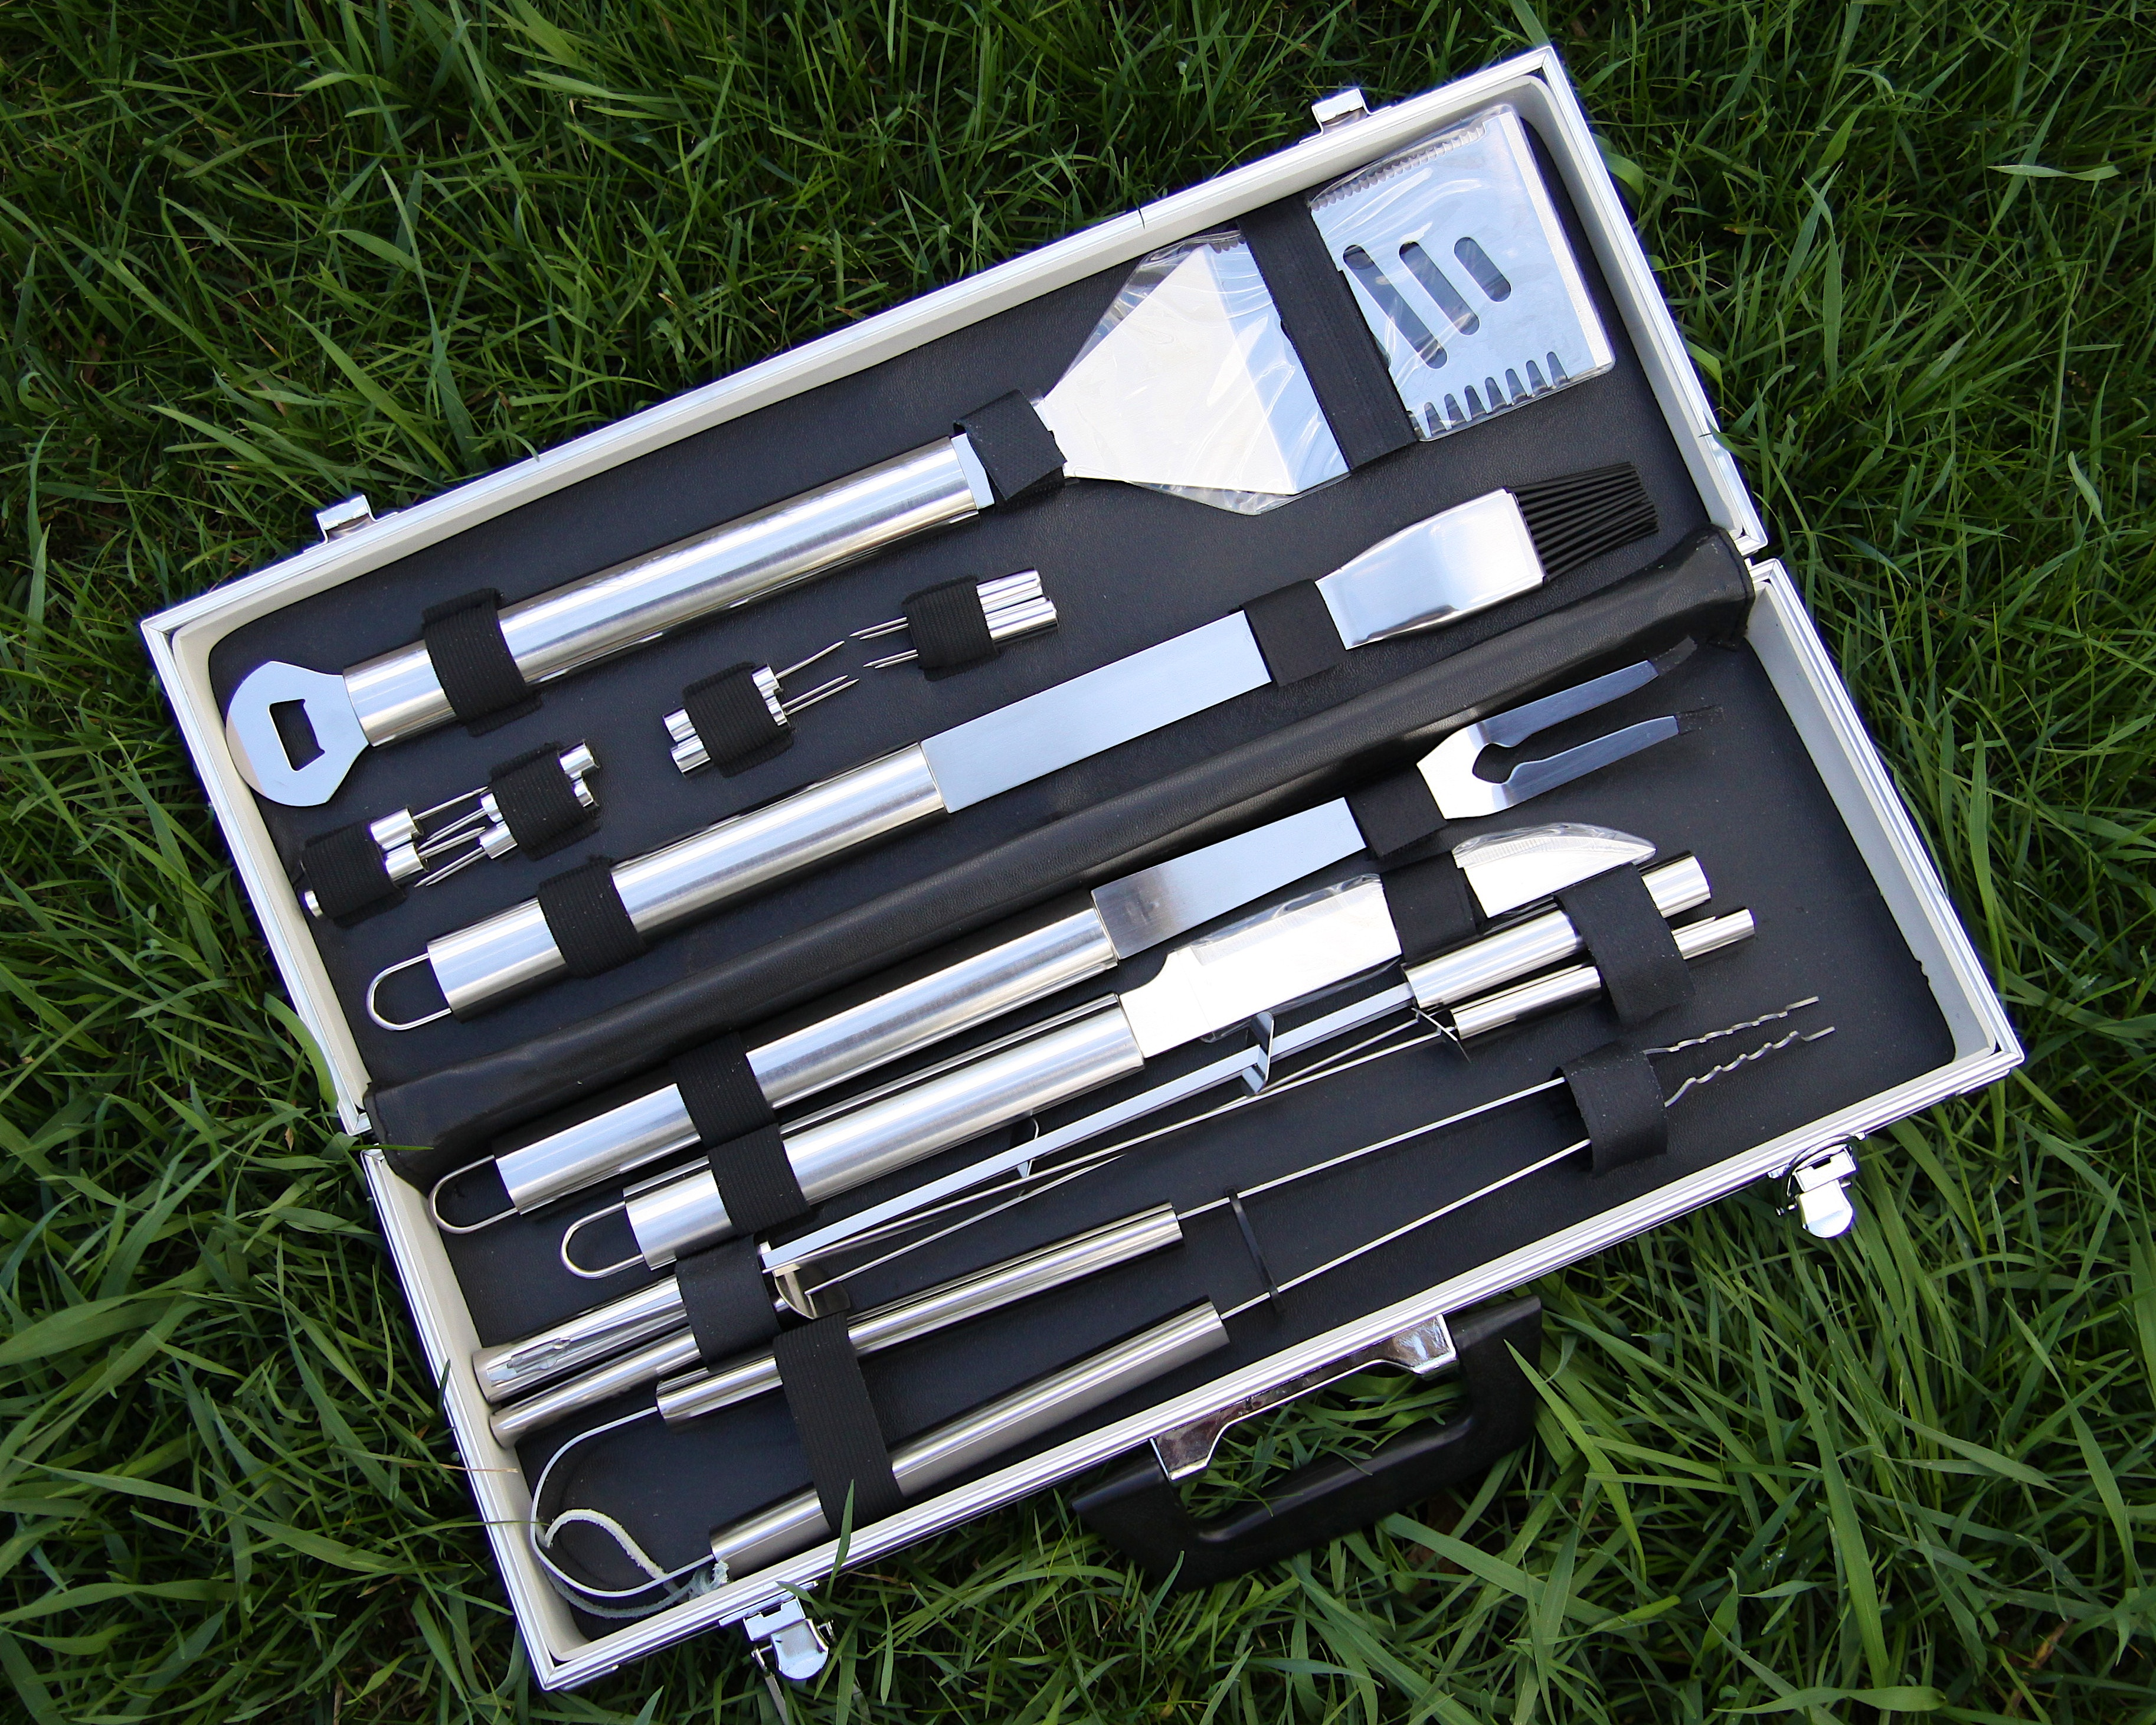 mr bbq 18 piece stainless steel tool set